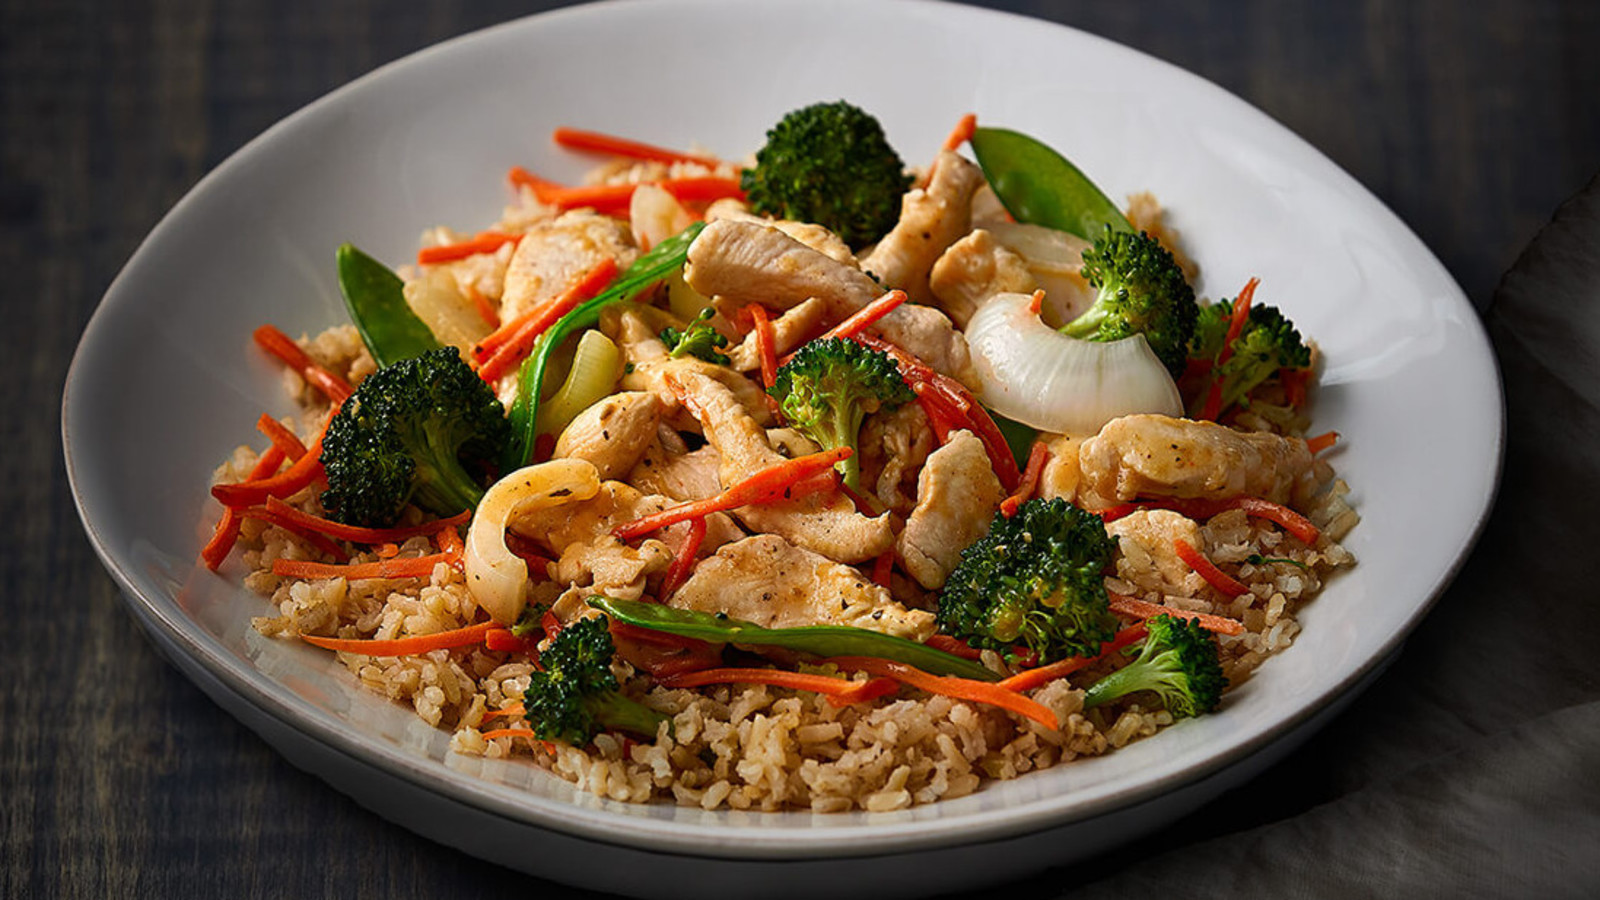 Lemongrass Stir Fry with Organic Chicken